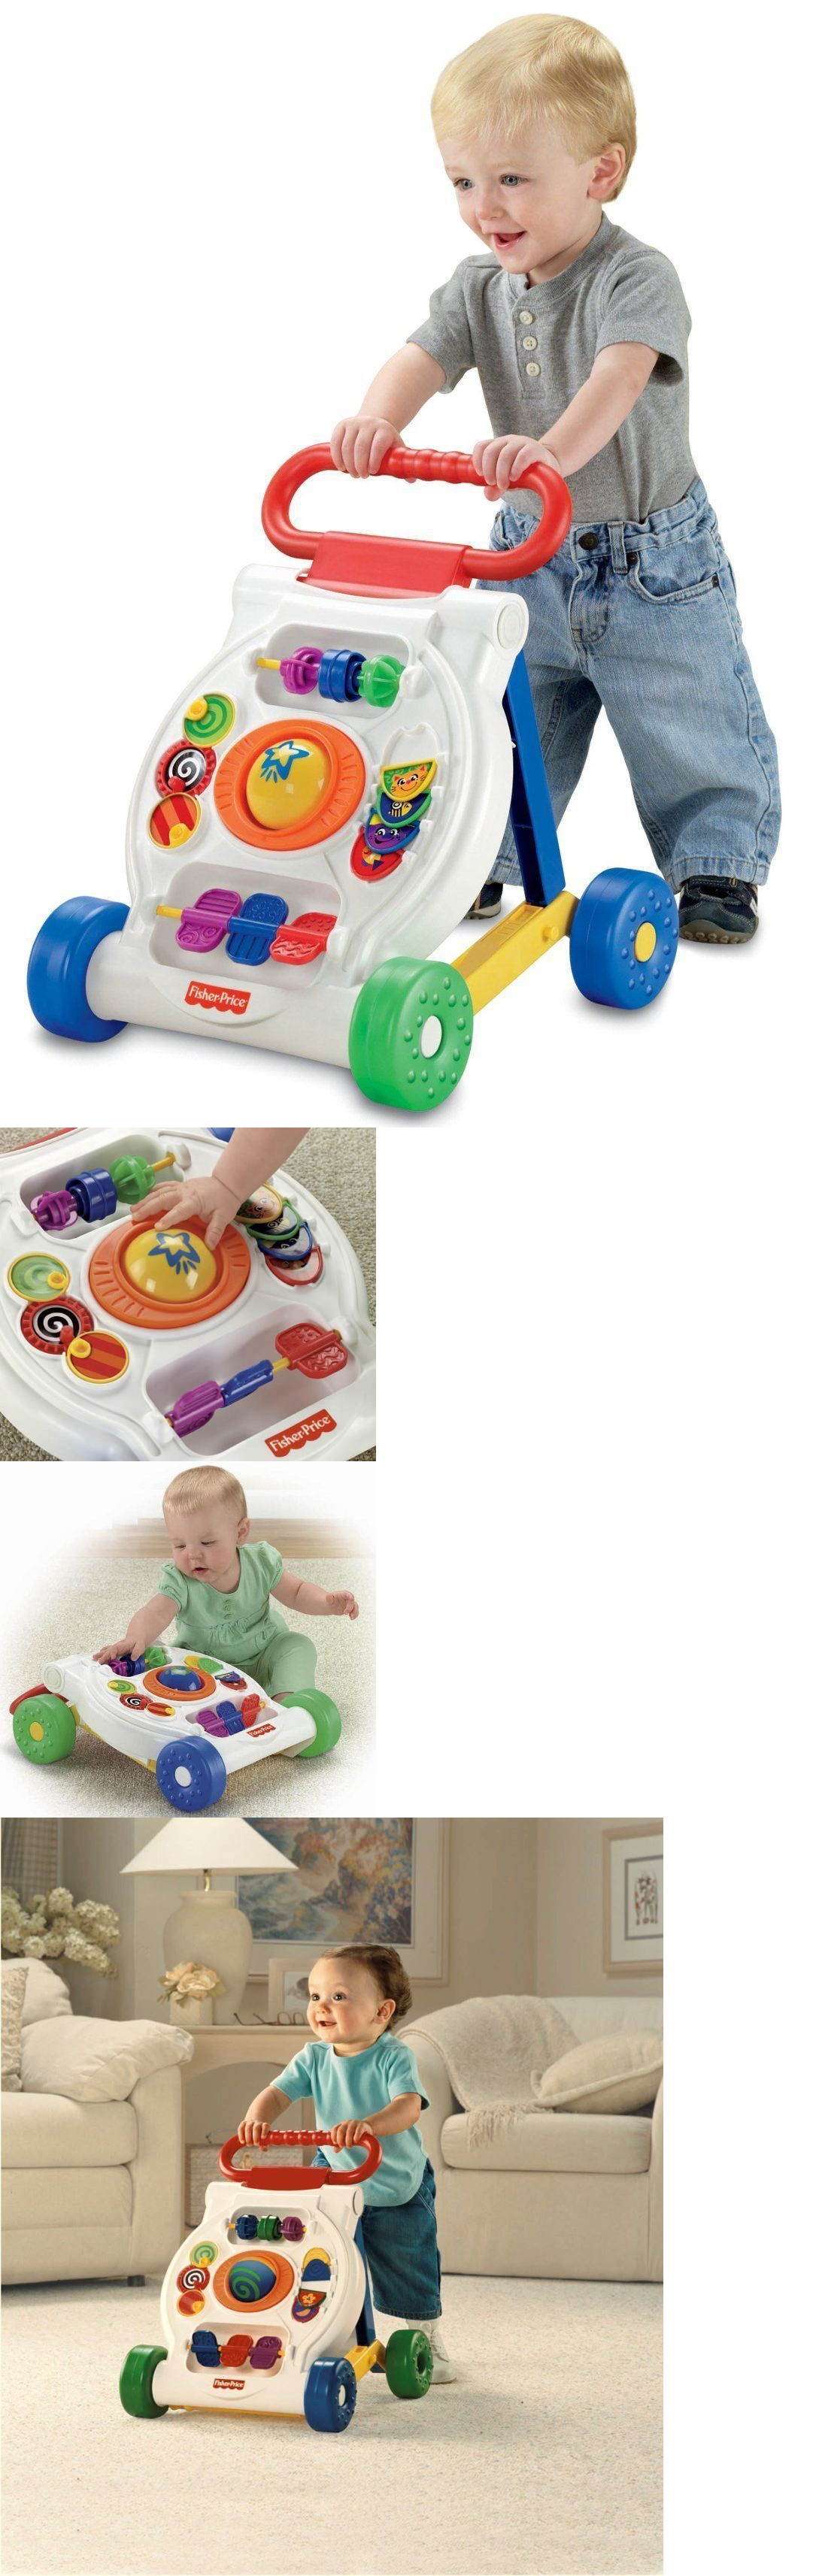 baby kid stuff Car Sit To Stand Teaching Learning Toy Baby